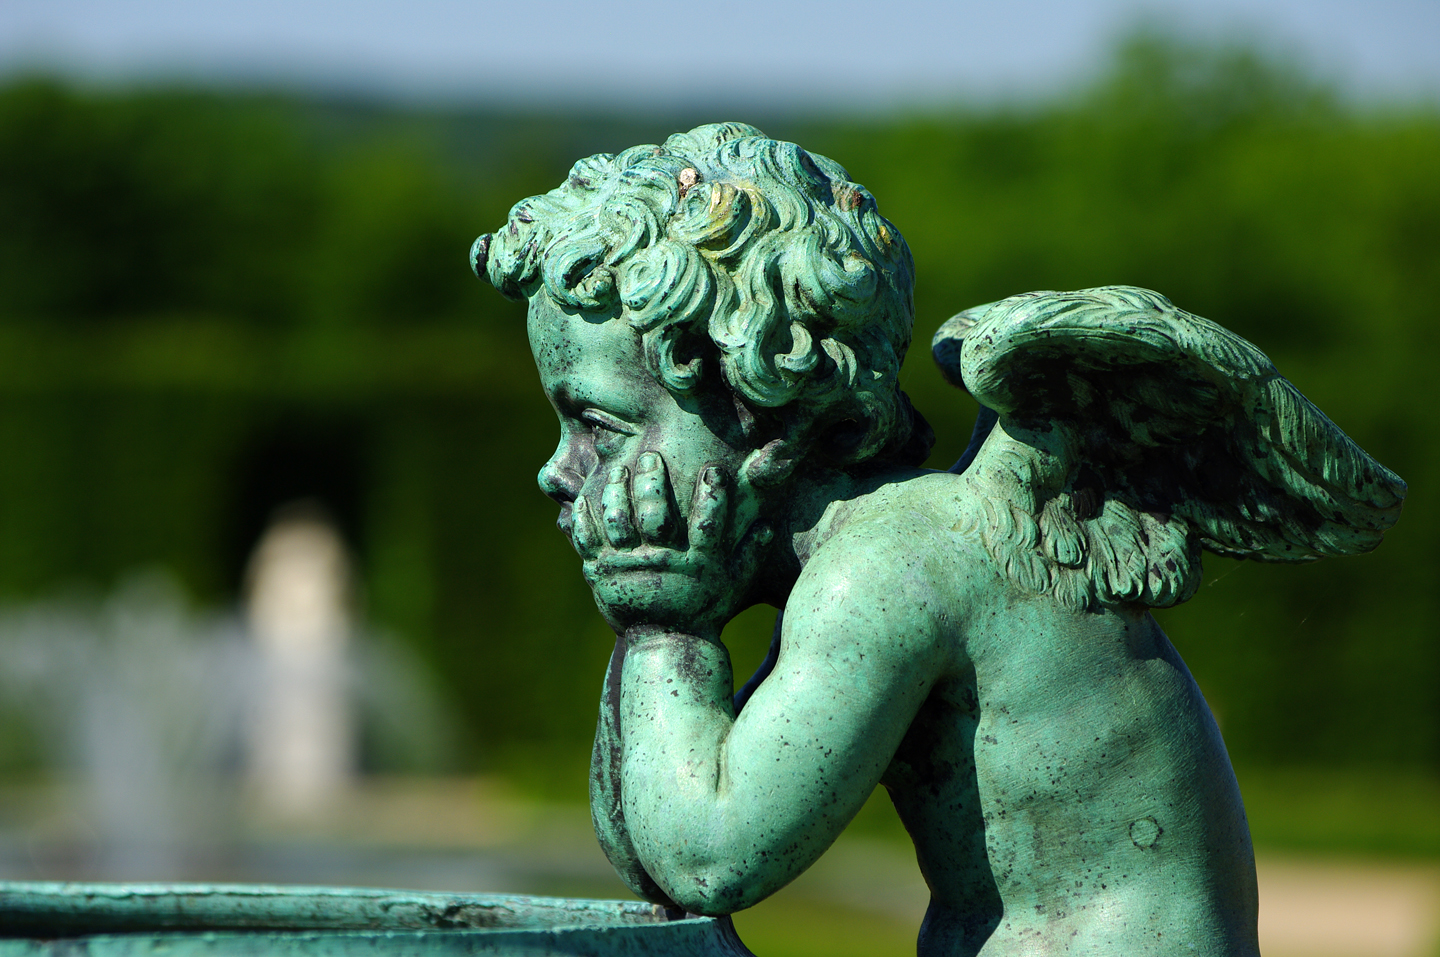 Disappointed_Cupid____by_Artamir78